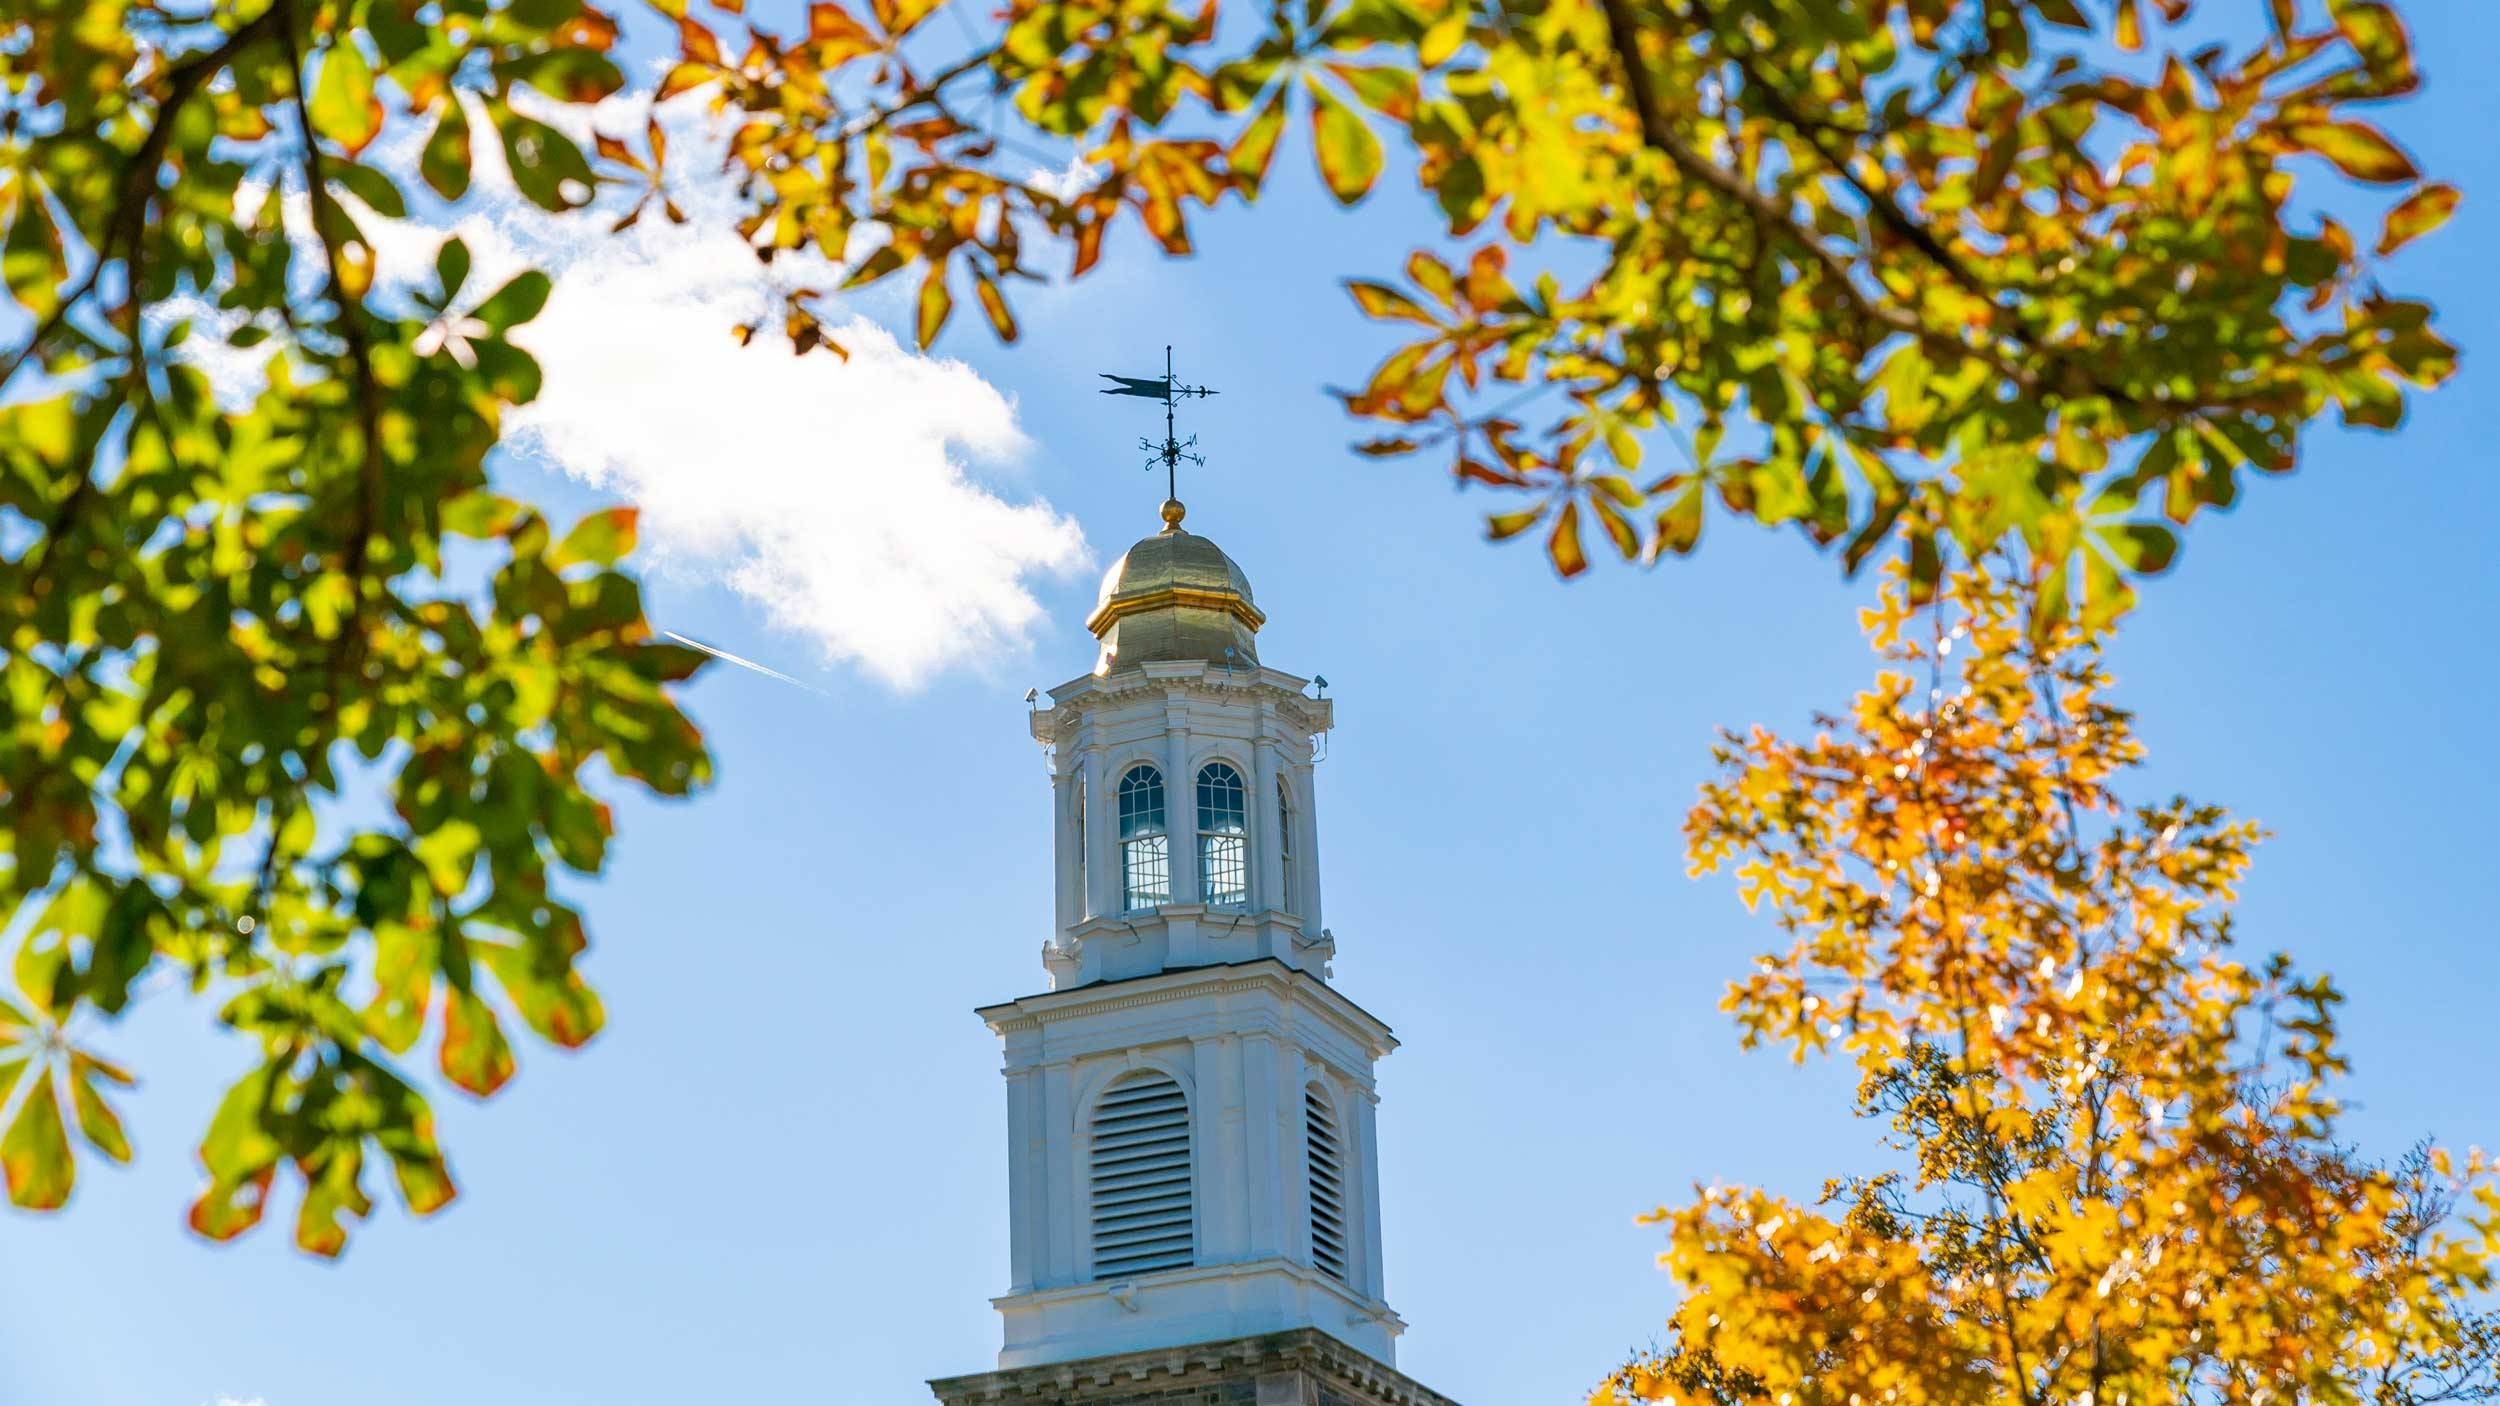 Alumni Memorial Chapel against a blue sky in autumn